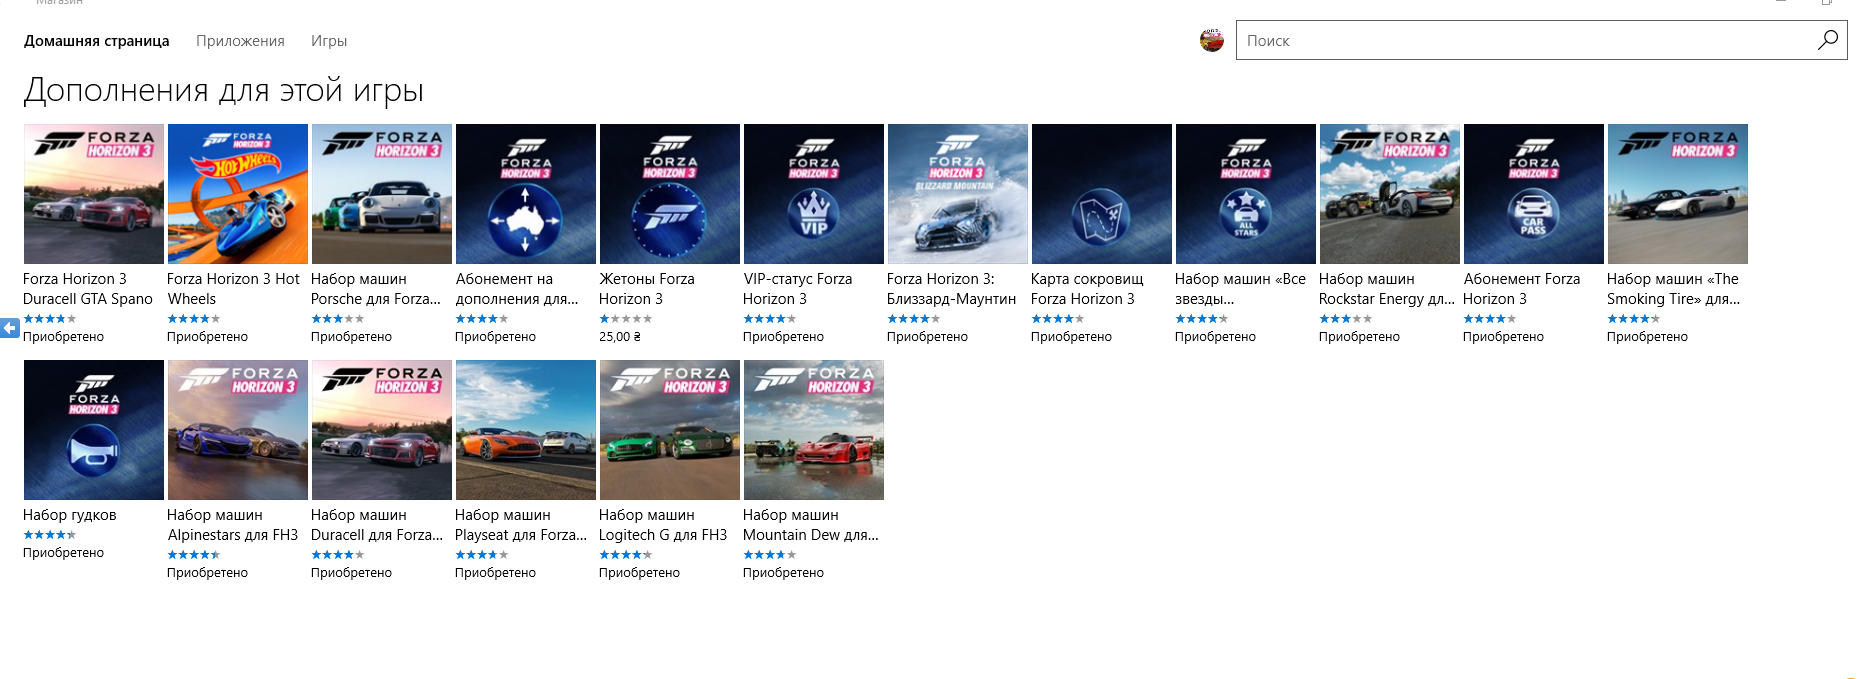 Скриншот 0 - Forza Horizon 3 Platinum+Forza Horizon 4 Ultimat+Sea of Thieves+ОНЛАЙН+АВТОАКТИВАЦИЯ (Region Free) PC